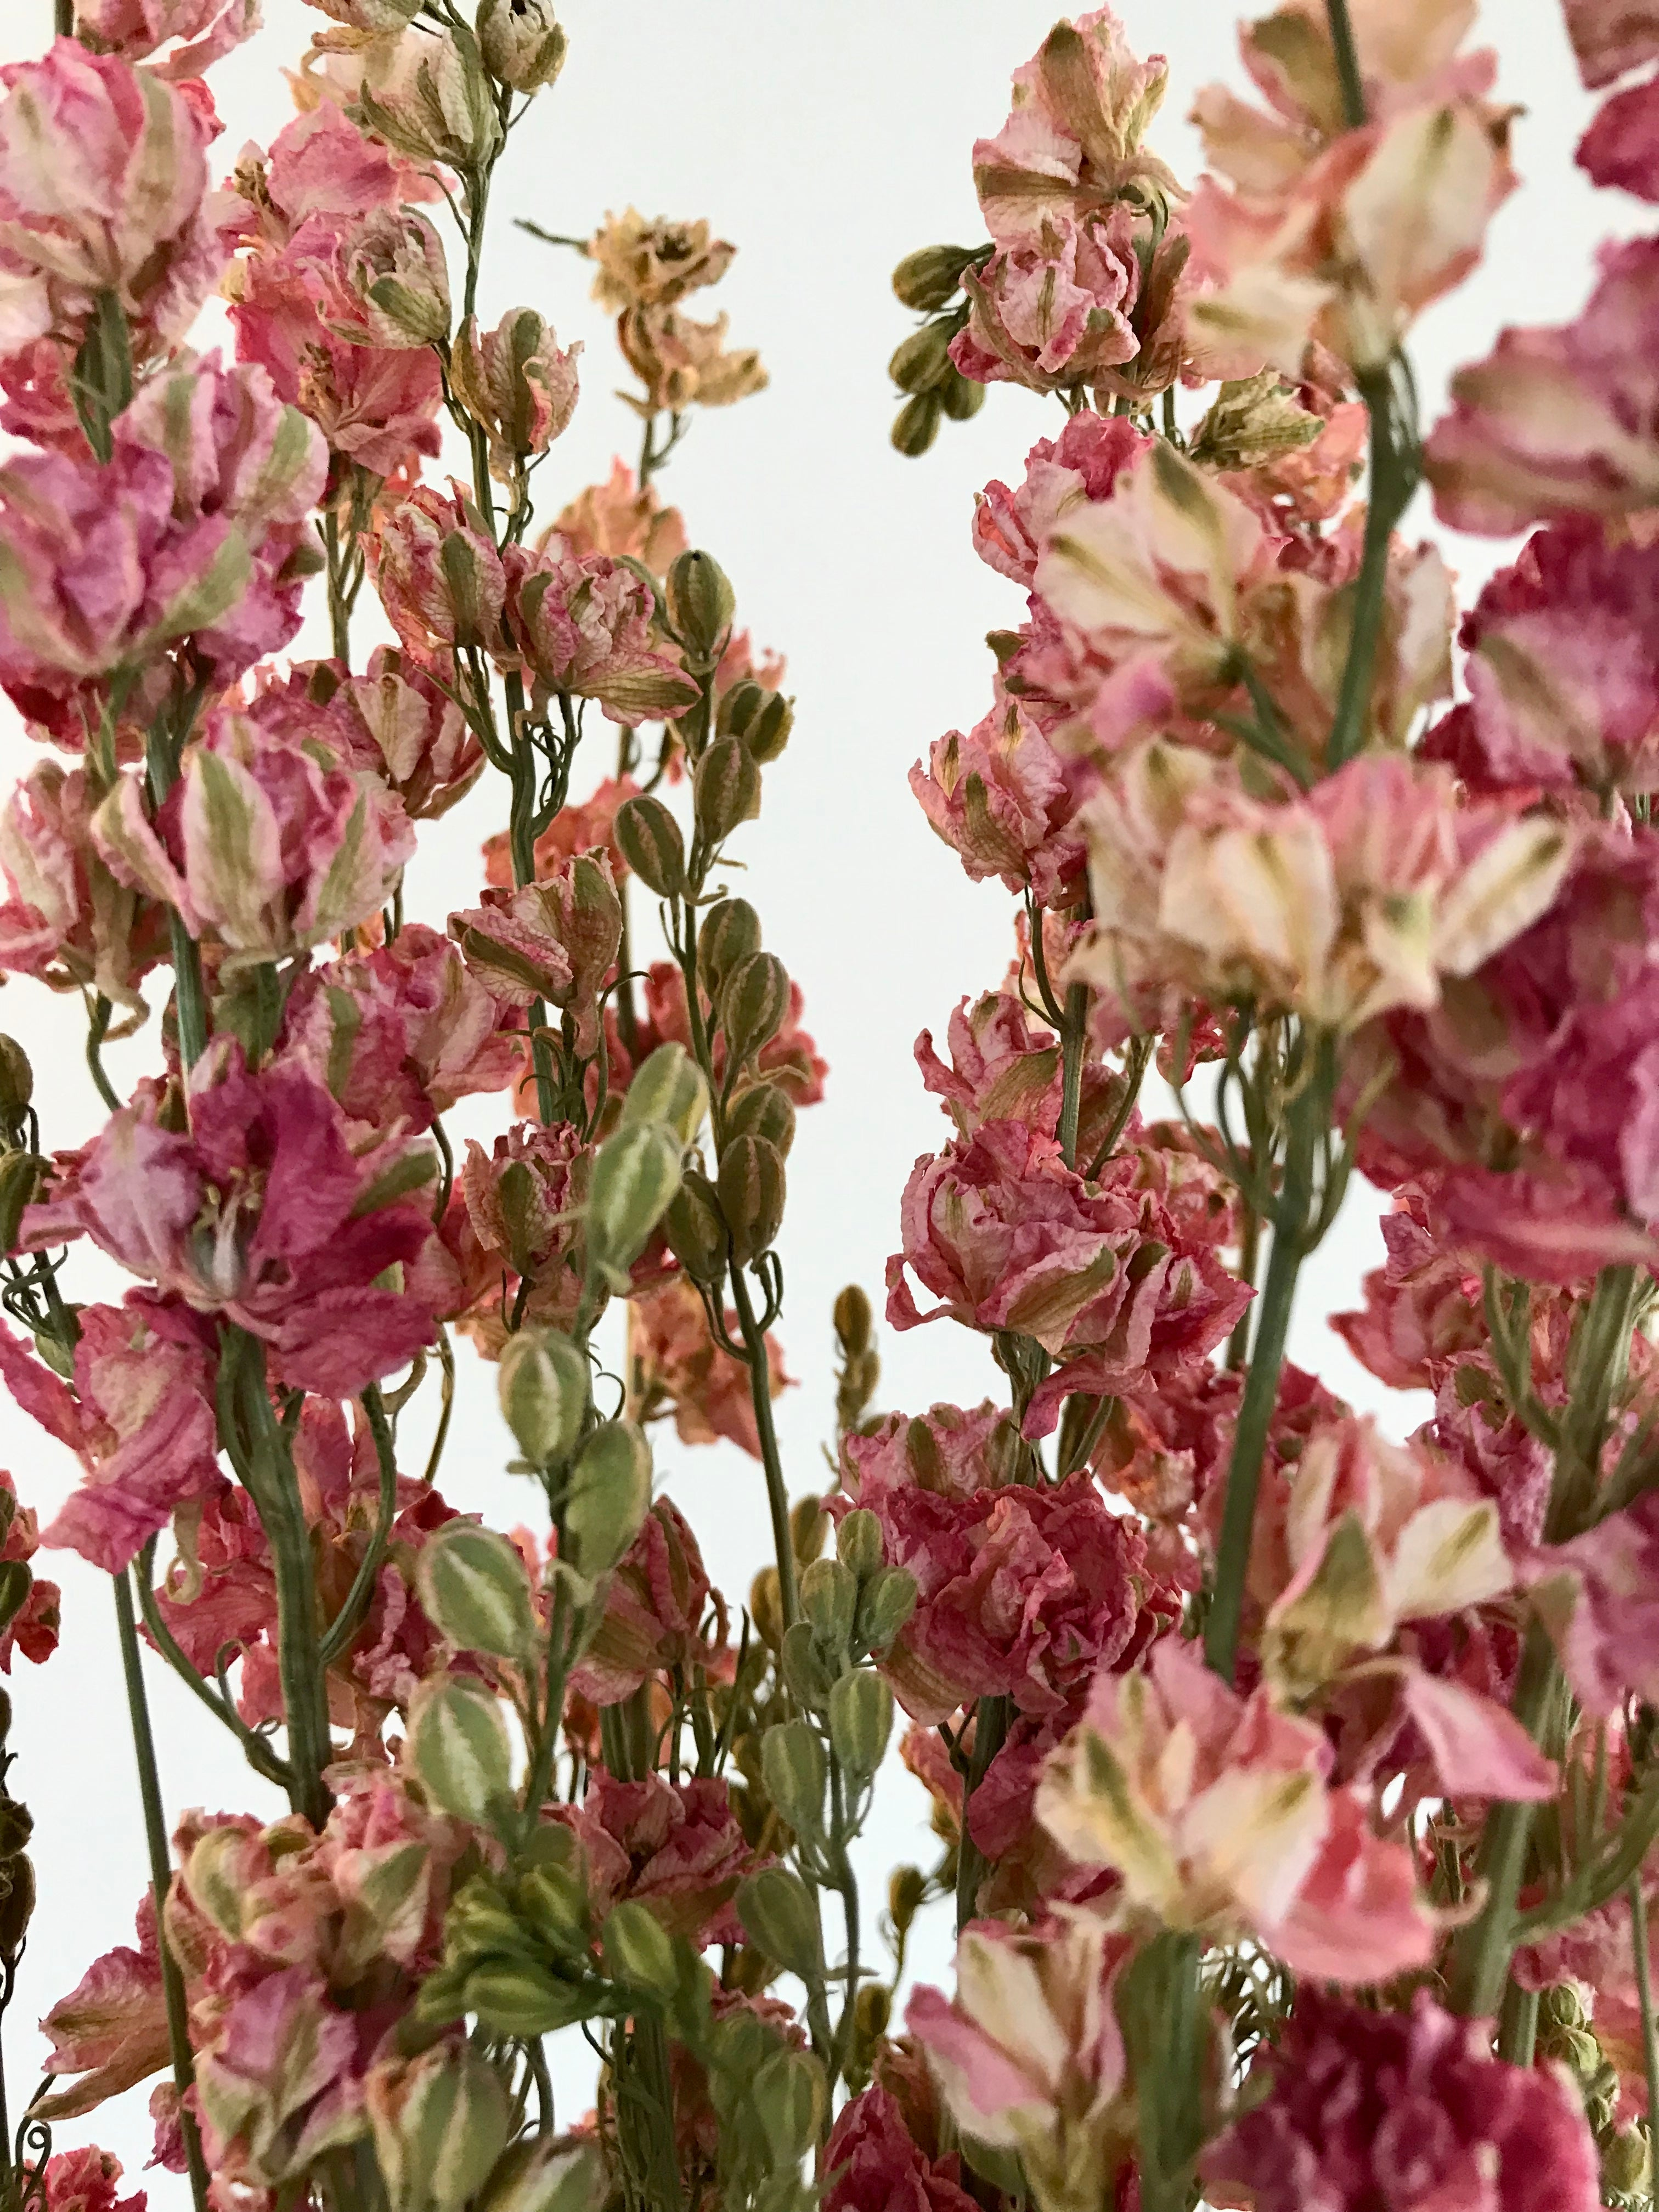 Bunch of Dried Pink Delphinium